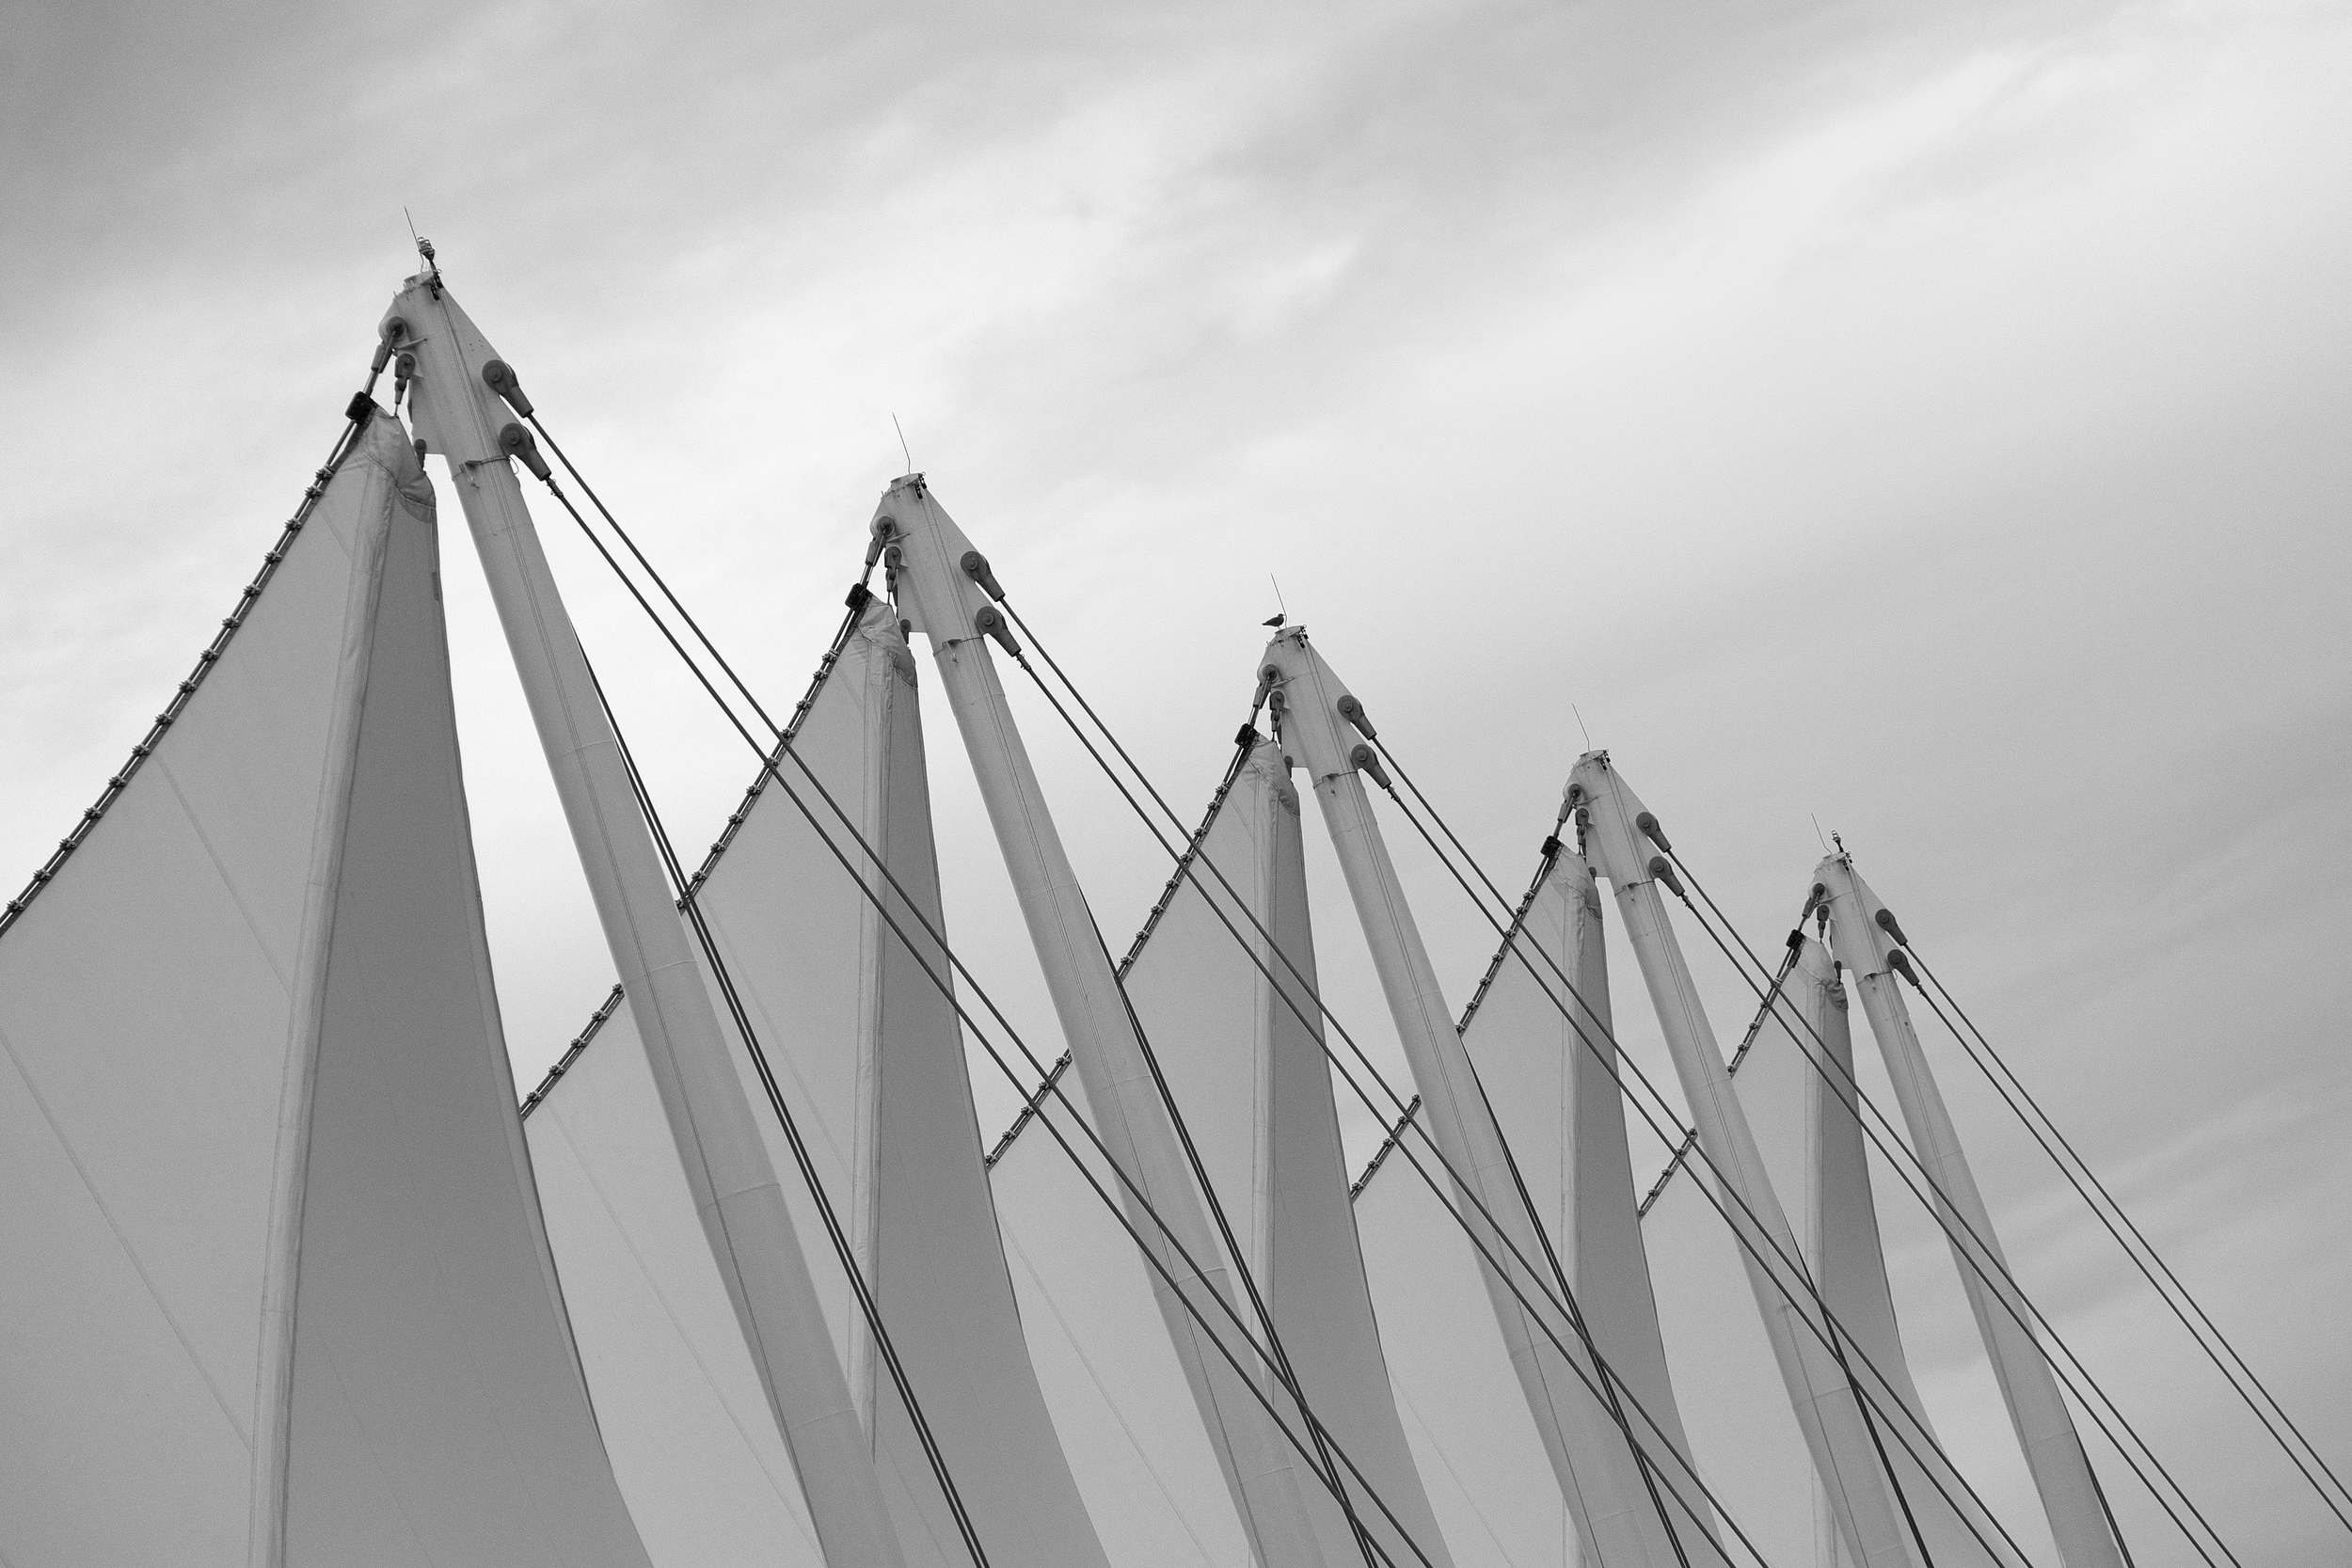 Sails —Fujifilm X-E1 with Fujinon 55-200mm; f/5.0 at 1/1400 sec. ISO800.